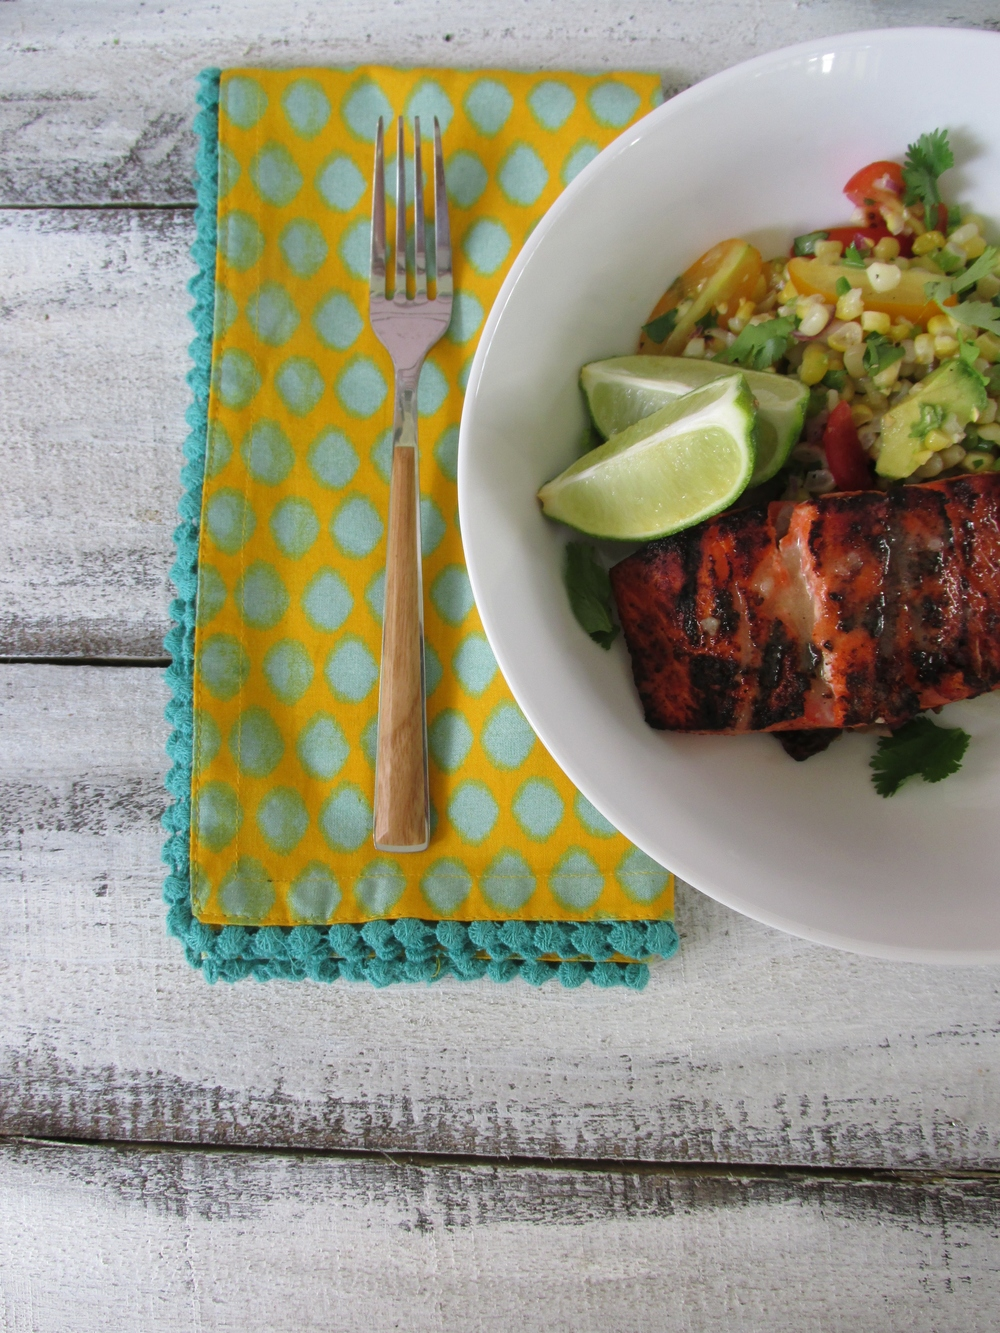 Chili Lime Glazed Salmon with Fresh Corn salad: My Diary of Us